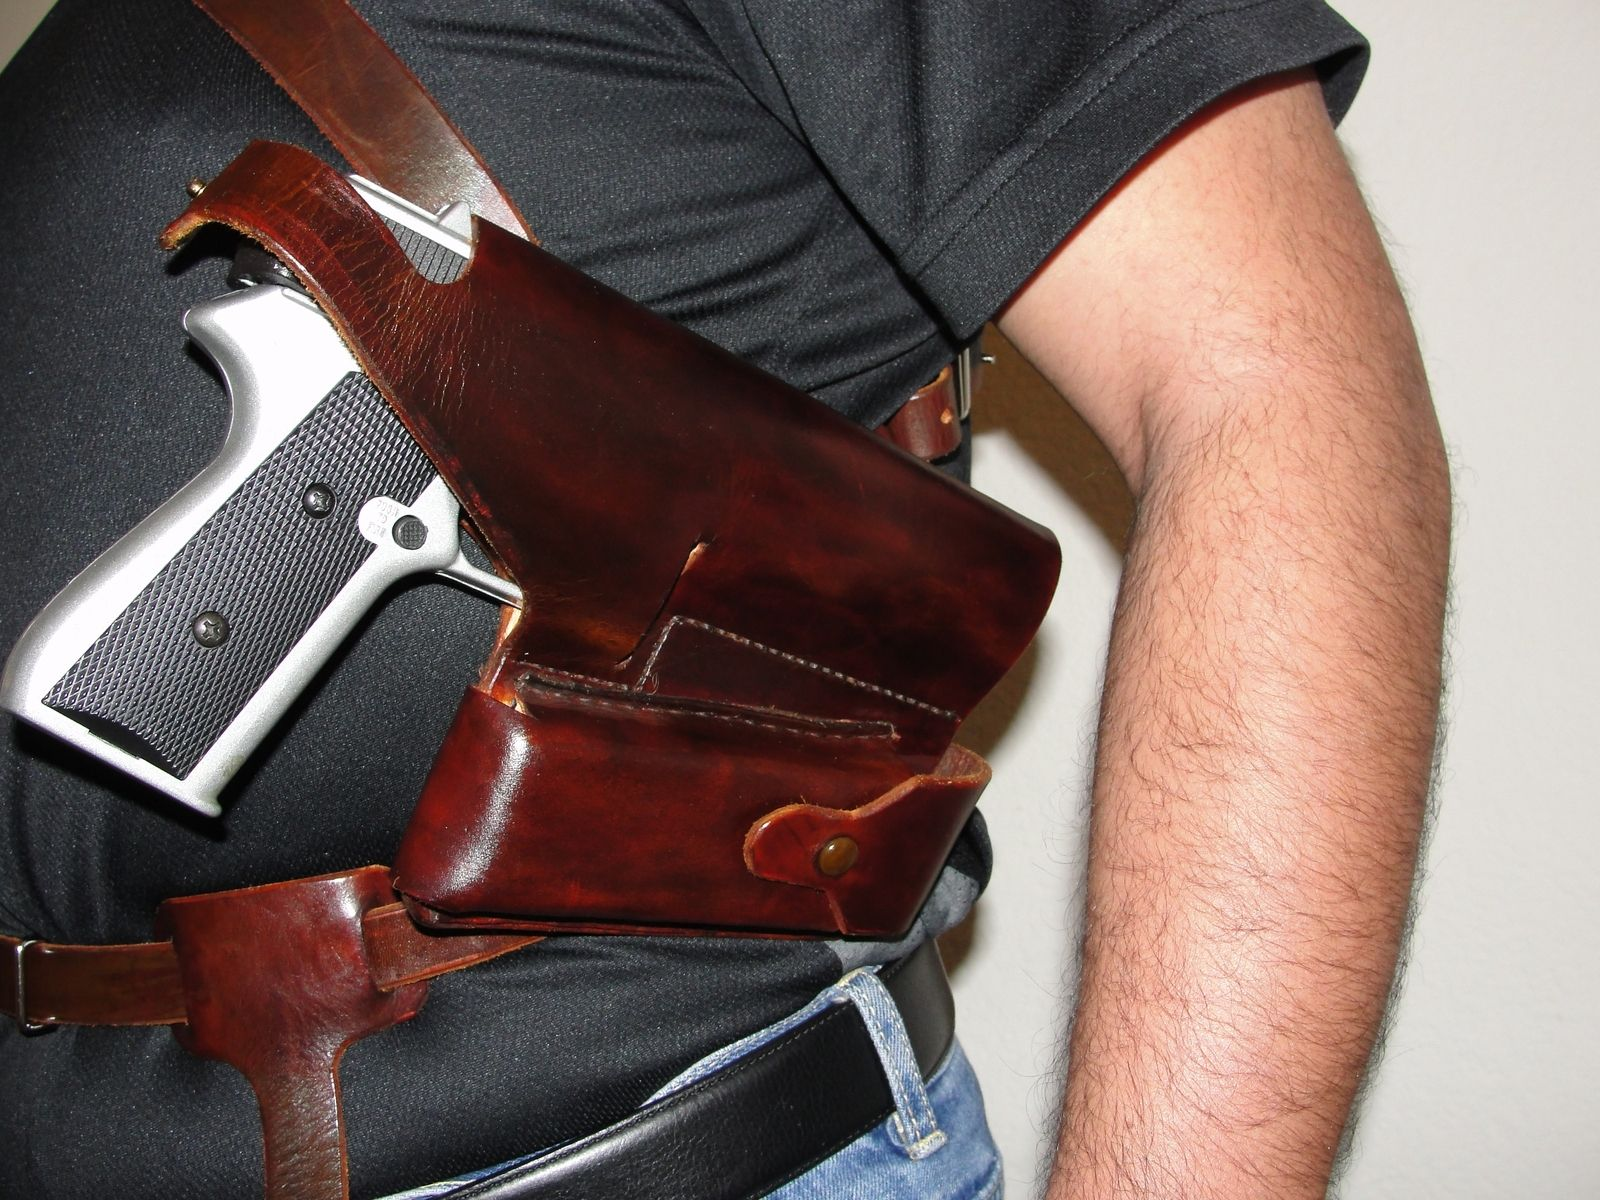 Handmade Colt 1911 Under Arm Shoulder Holster By